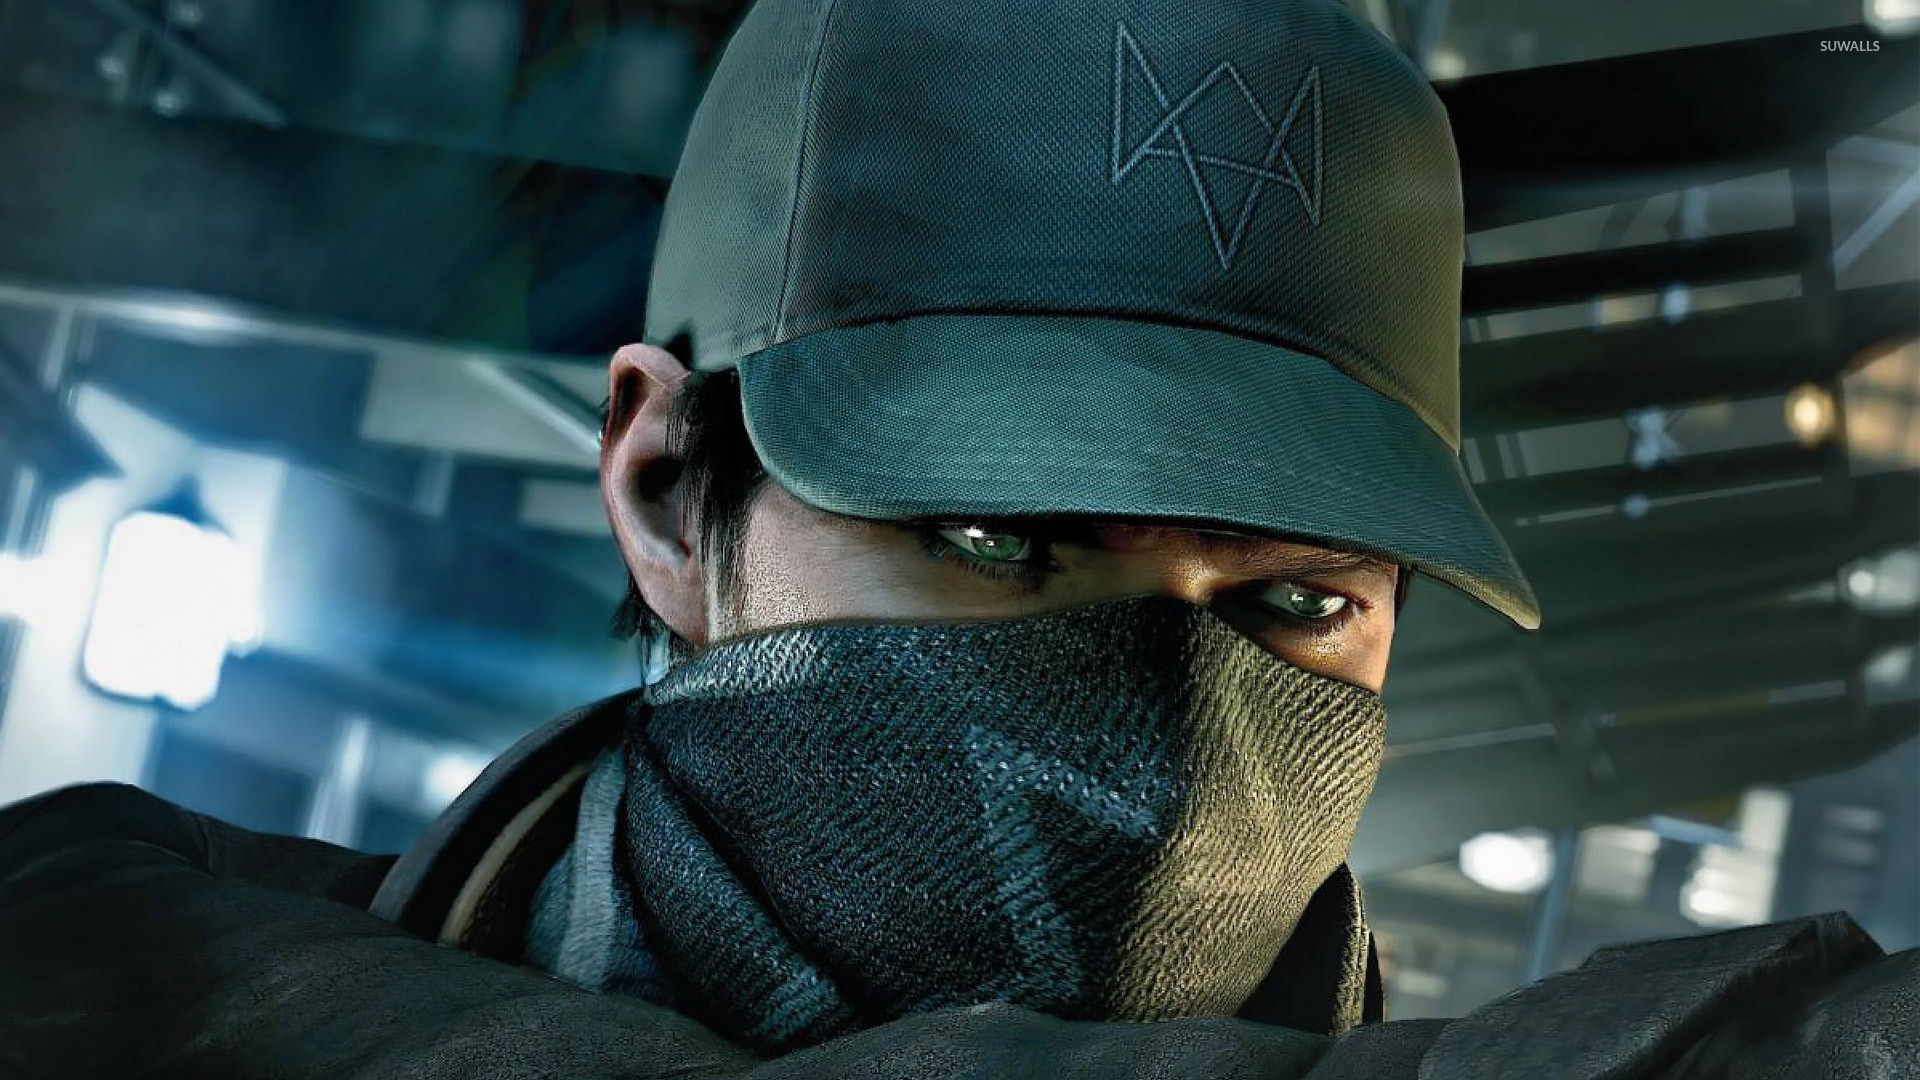 Aiden Pearce Watch Dogs 3 Wallpaper Game Wallpapers